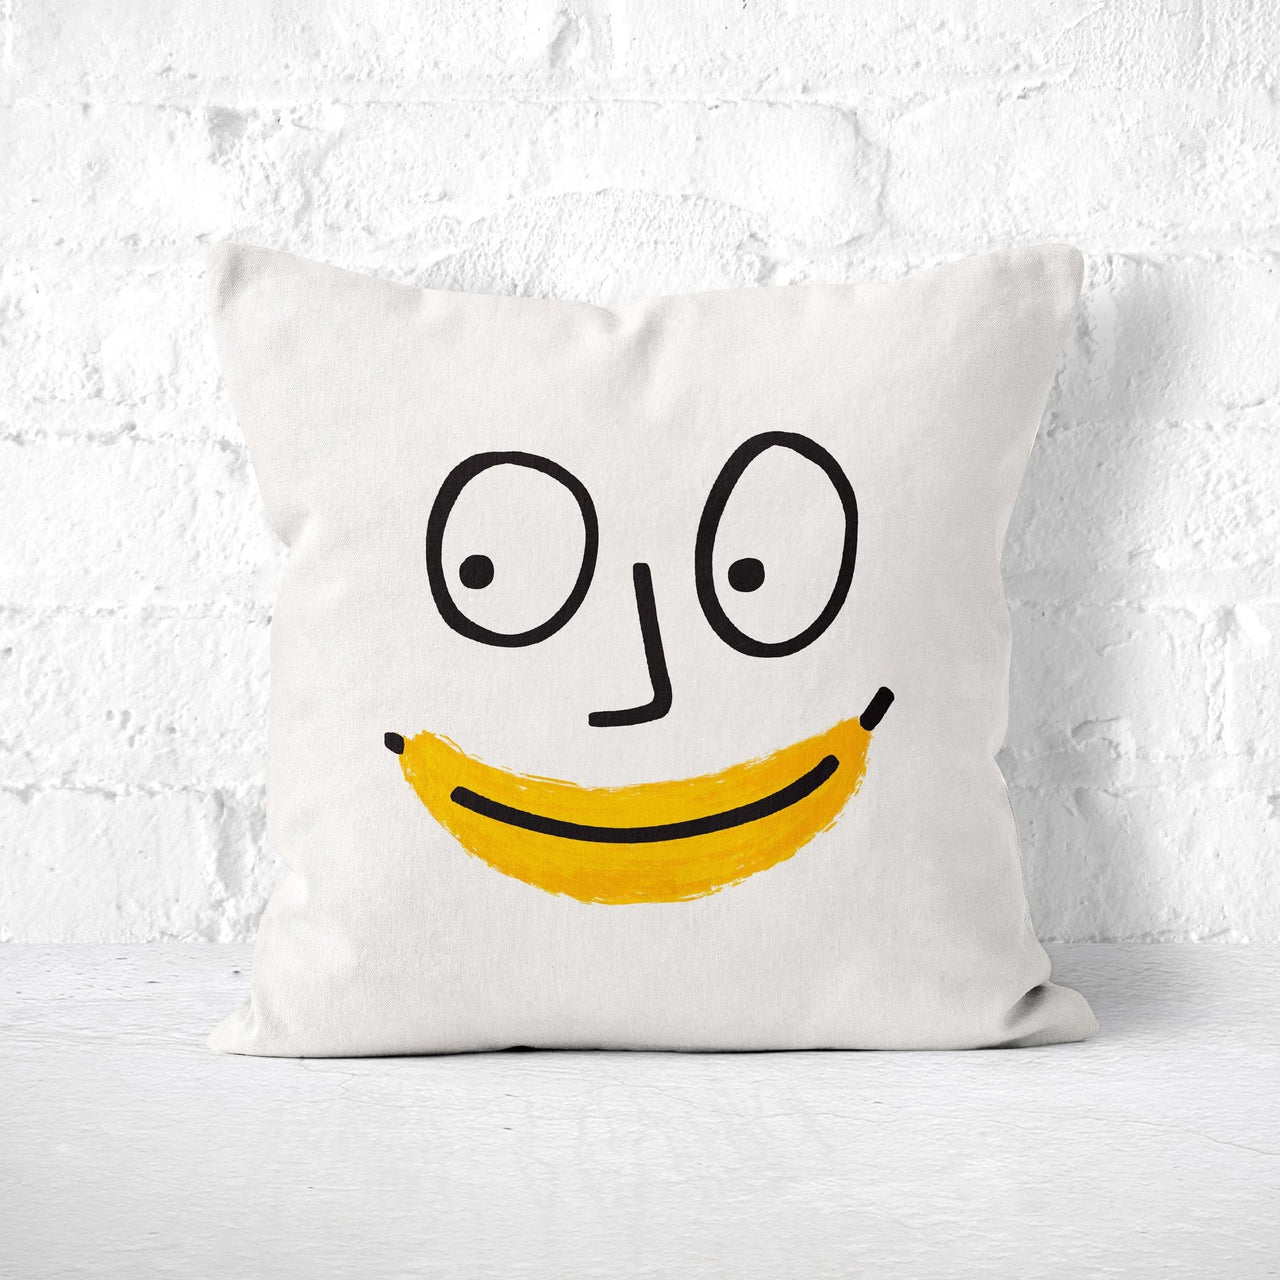 Banana Face Pillow - Funny Quirky Novelty Throw Pillow, Yellow Fruit Decor, Kids Room Decor, Kawaii Toss Cushion,